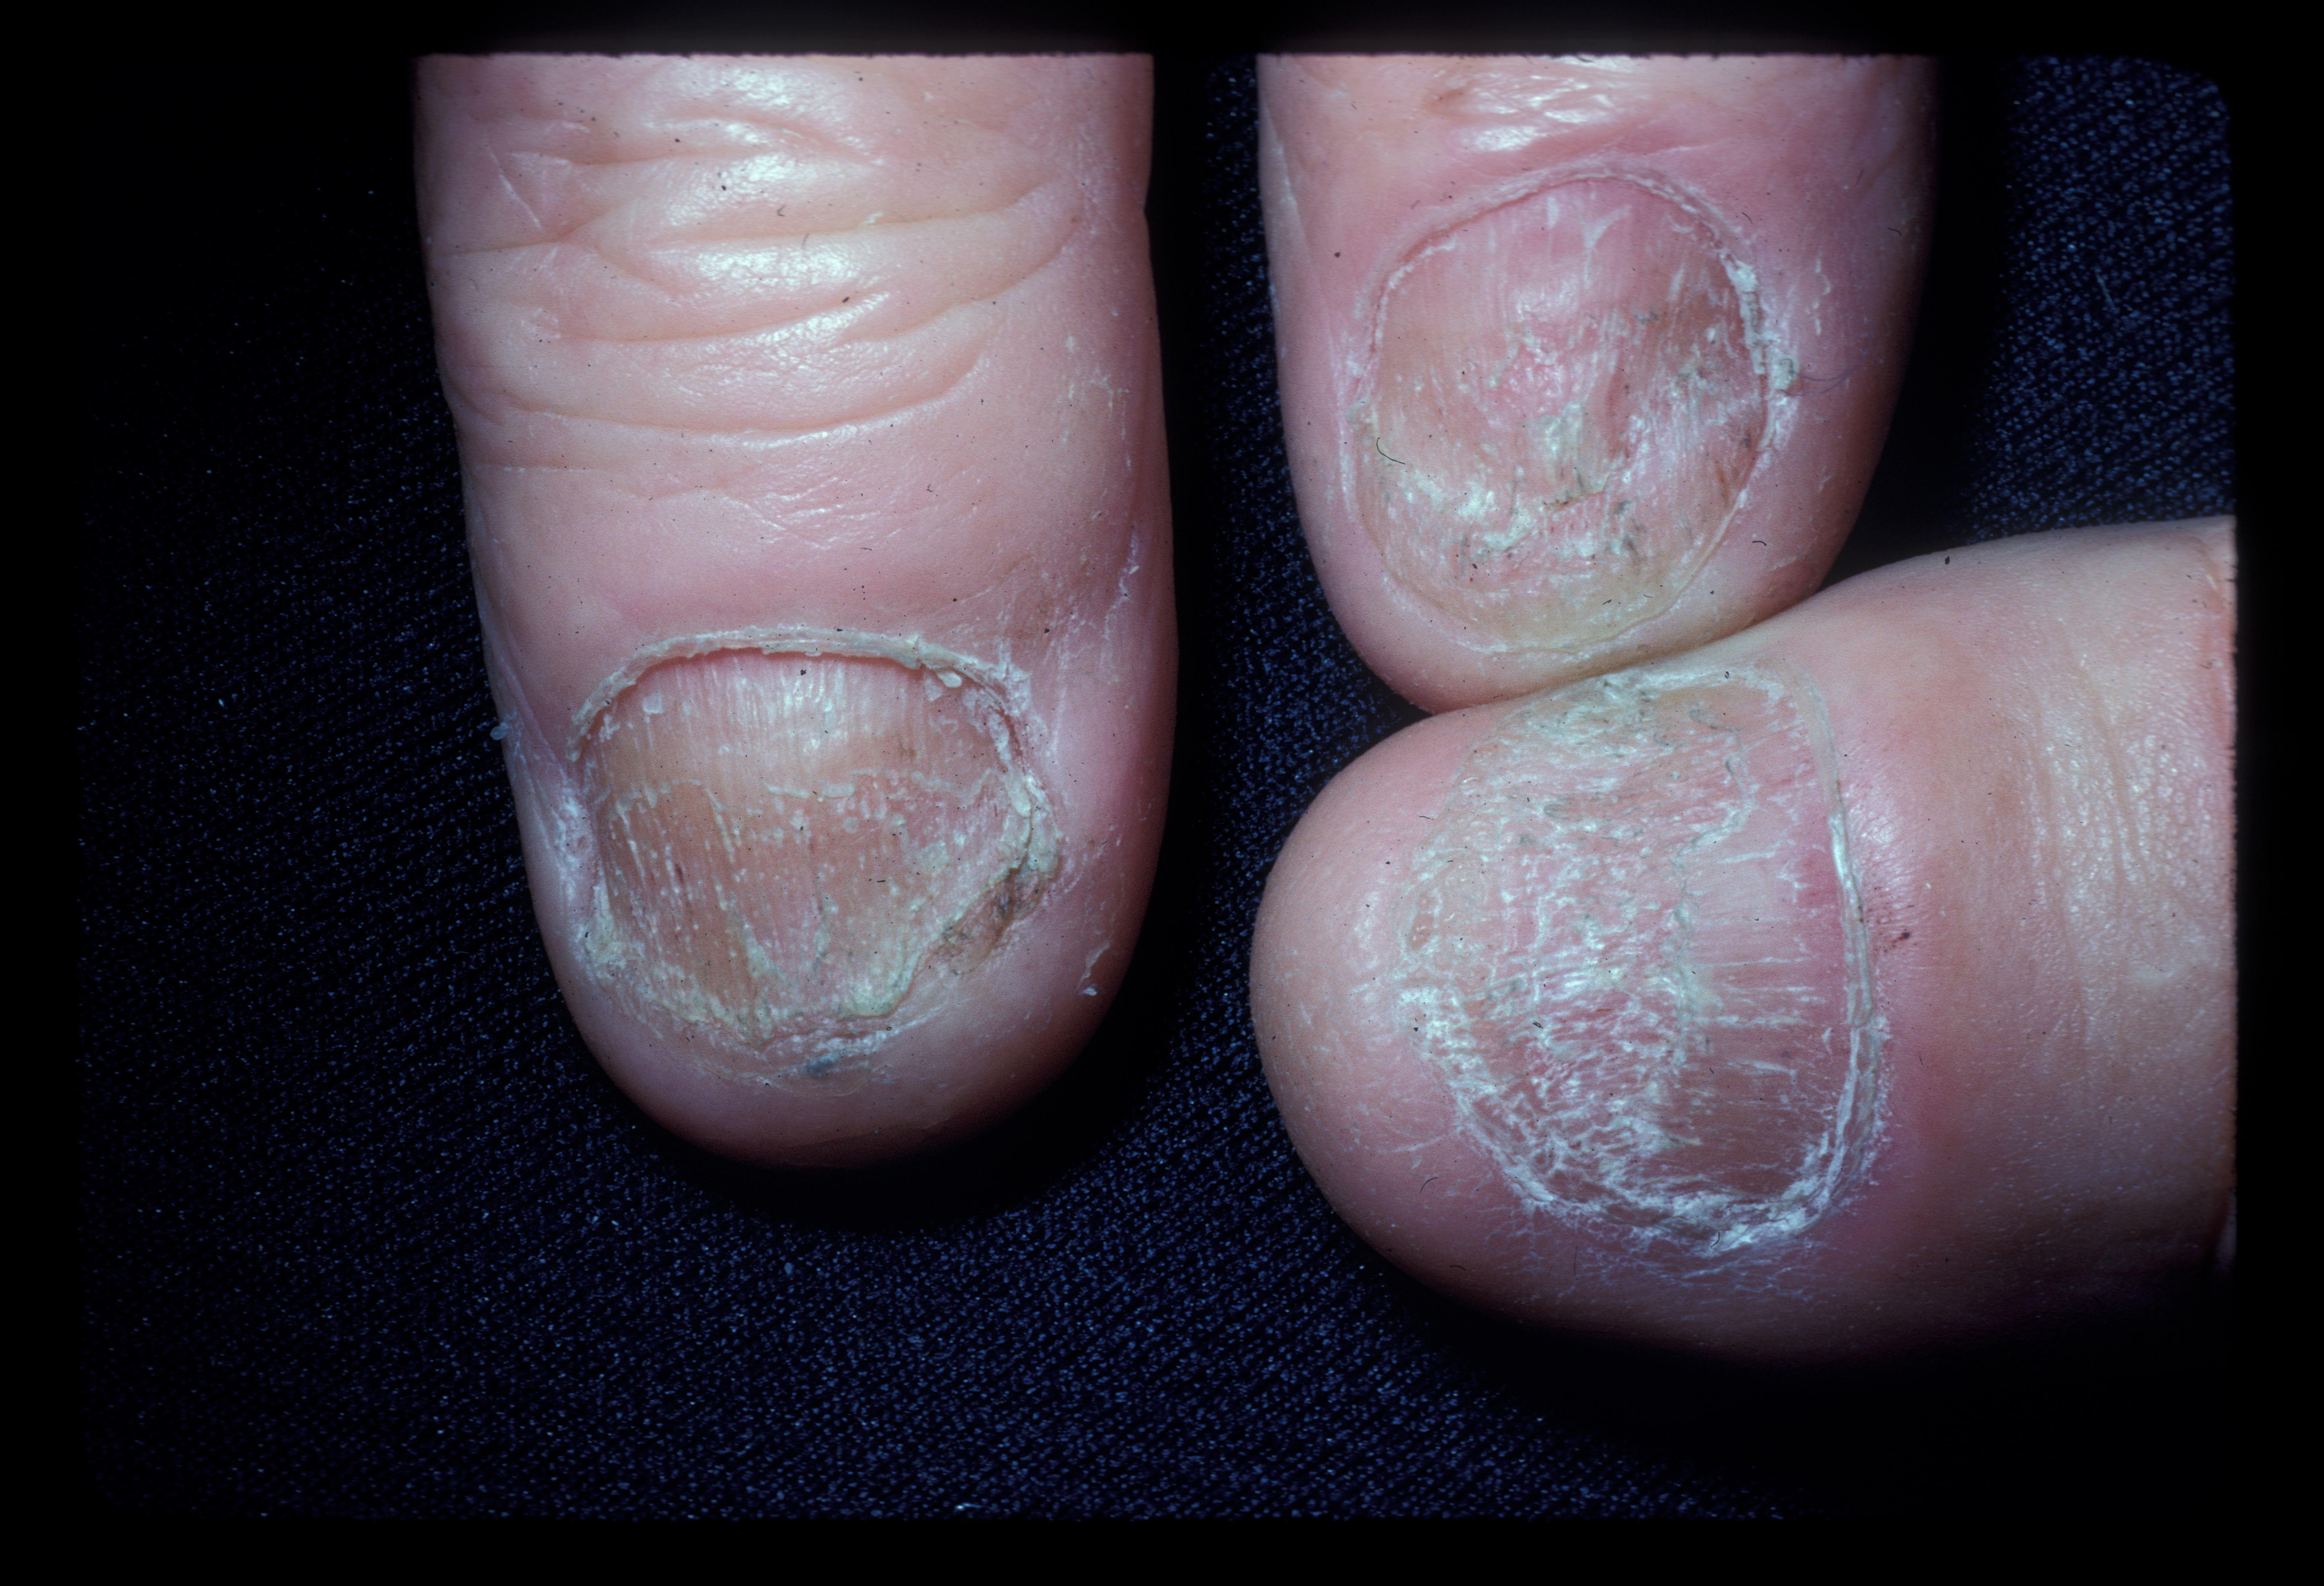 Alopecia areata.  Dystrophic nails.